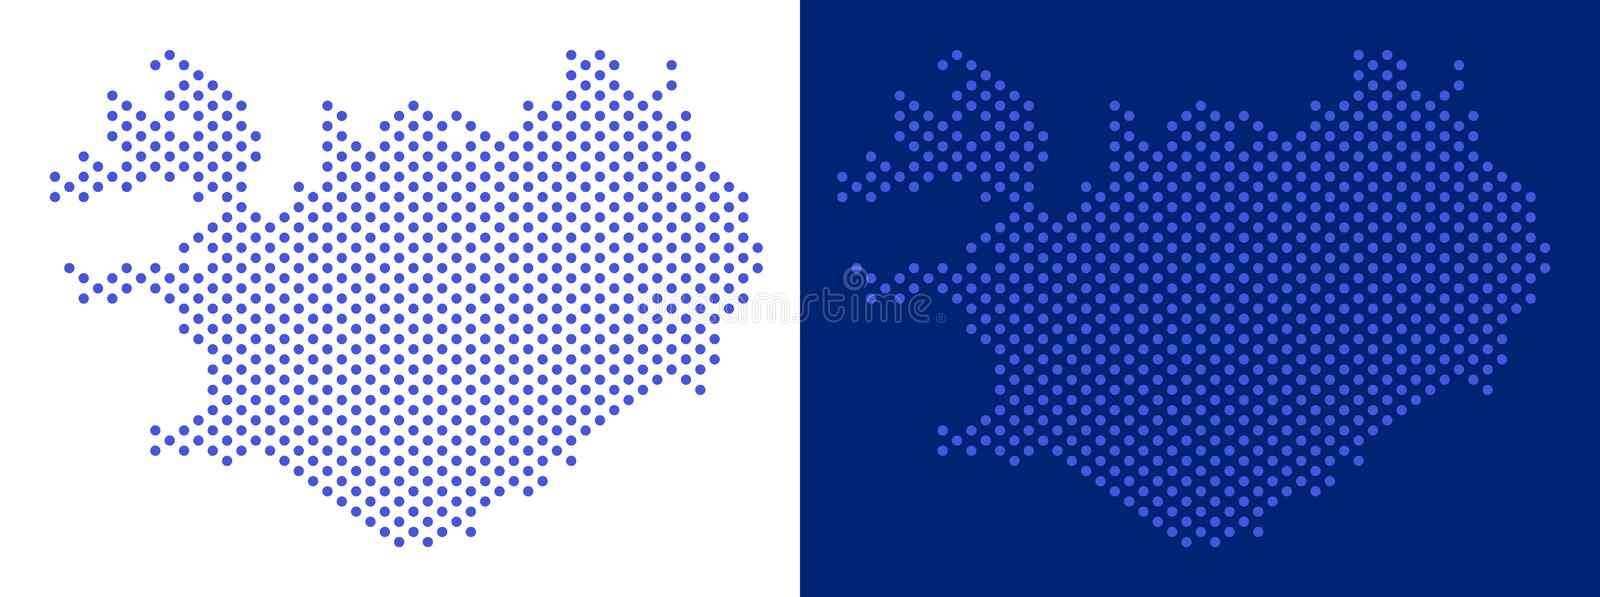 Dot Iceland Map stock vector. Illustration of pixel - 119192009